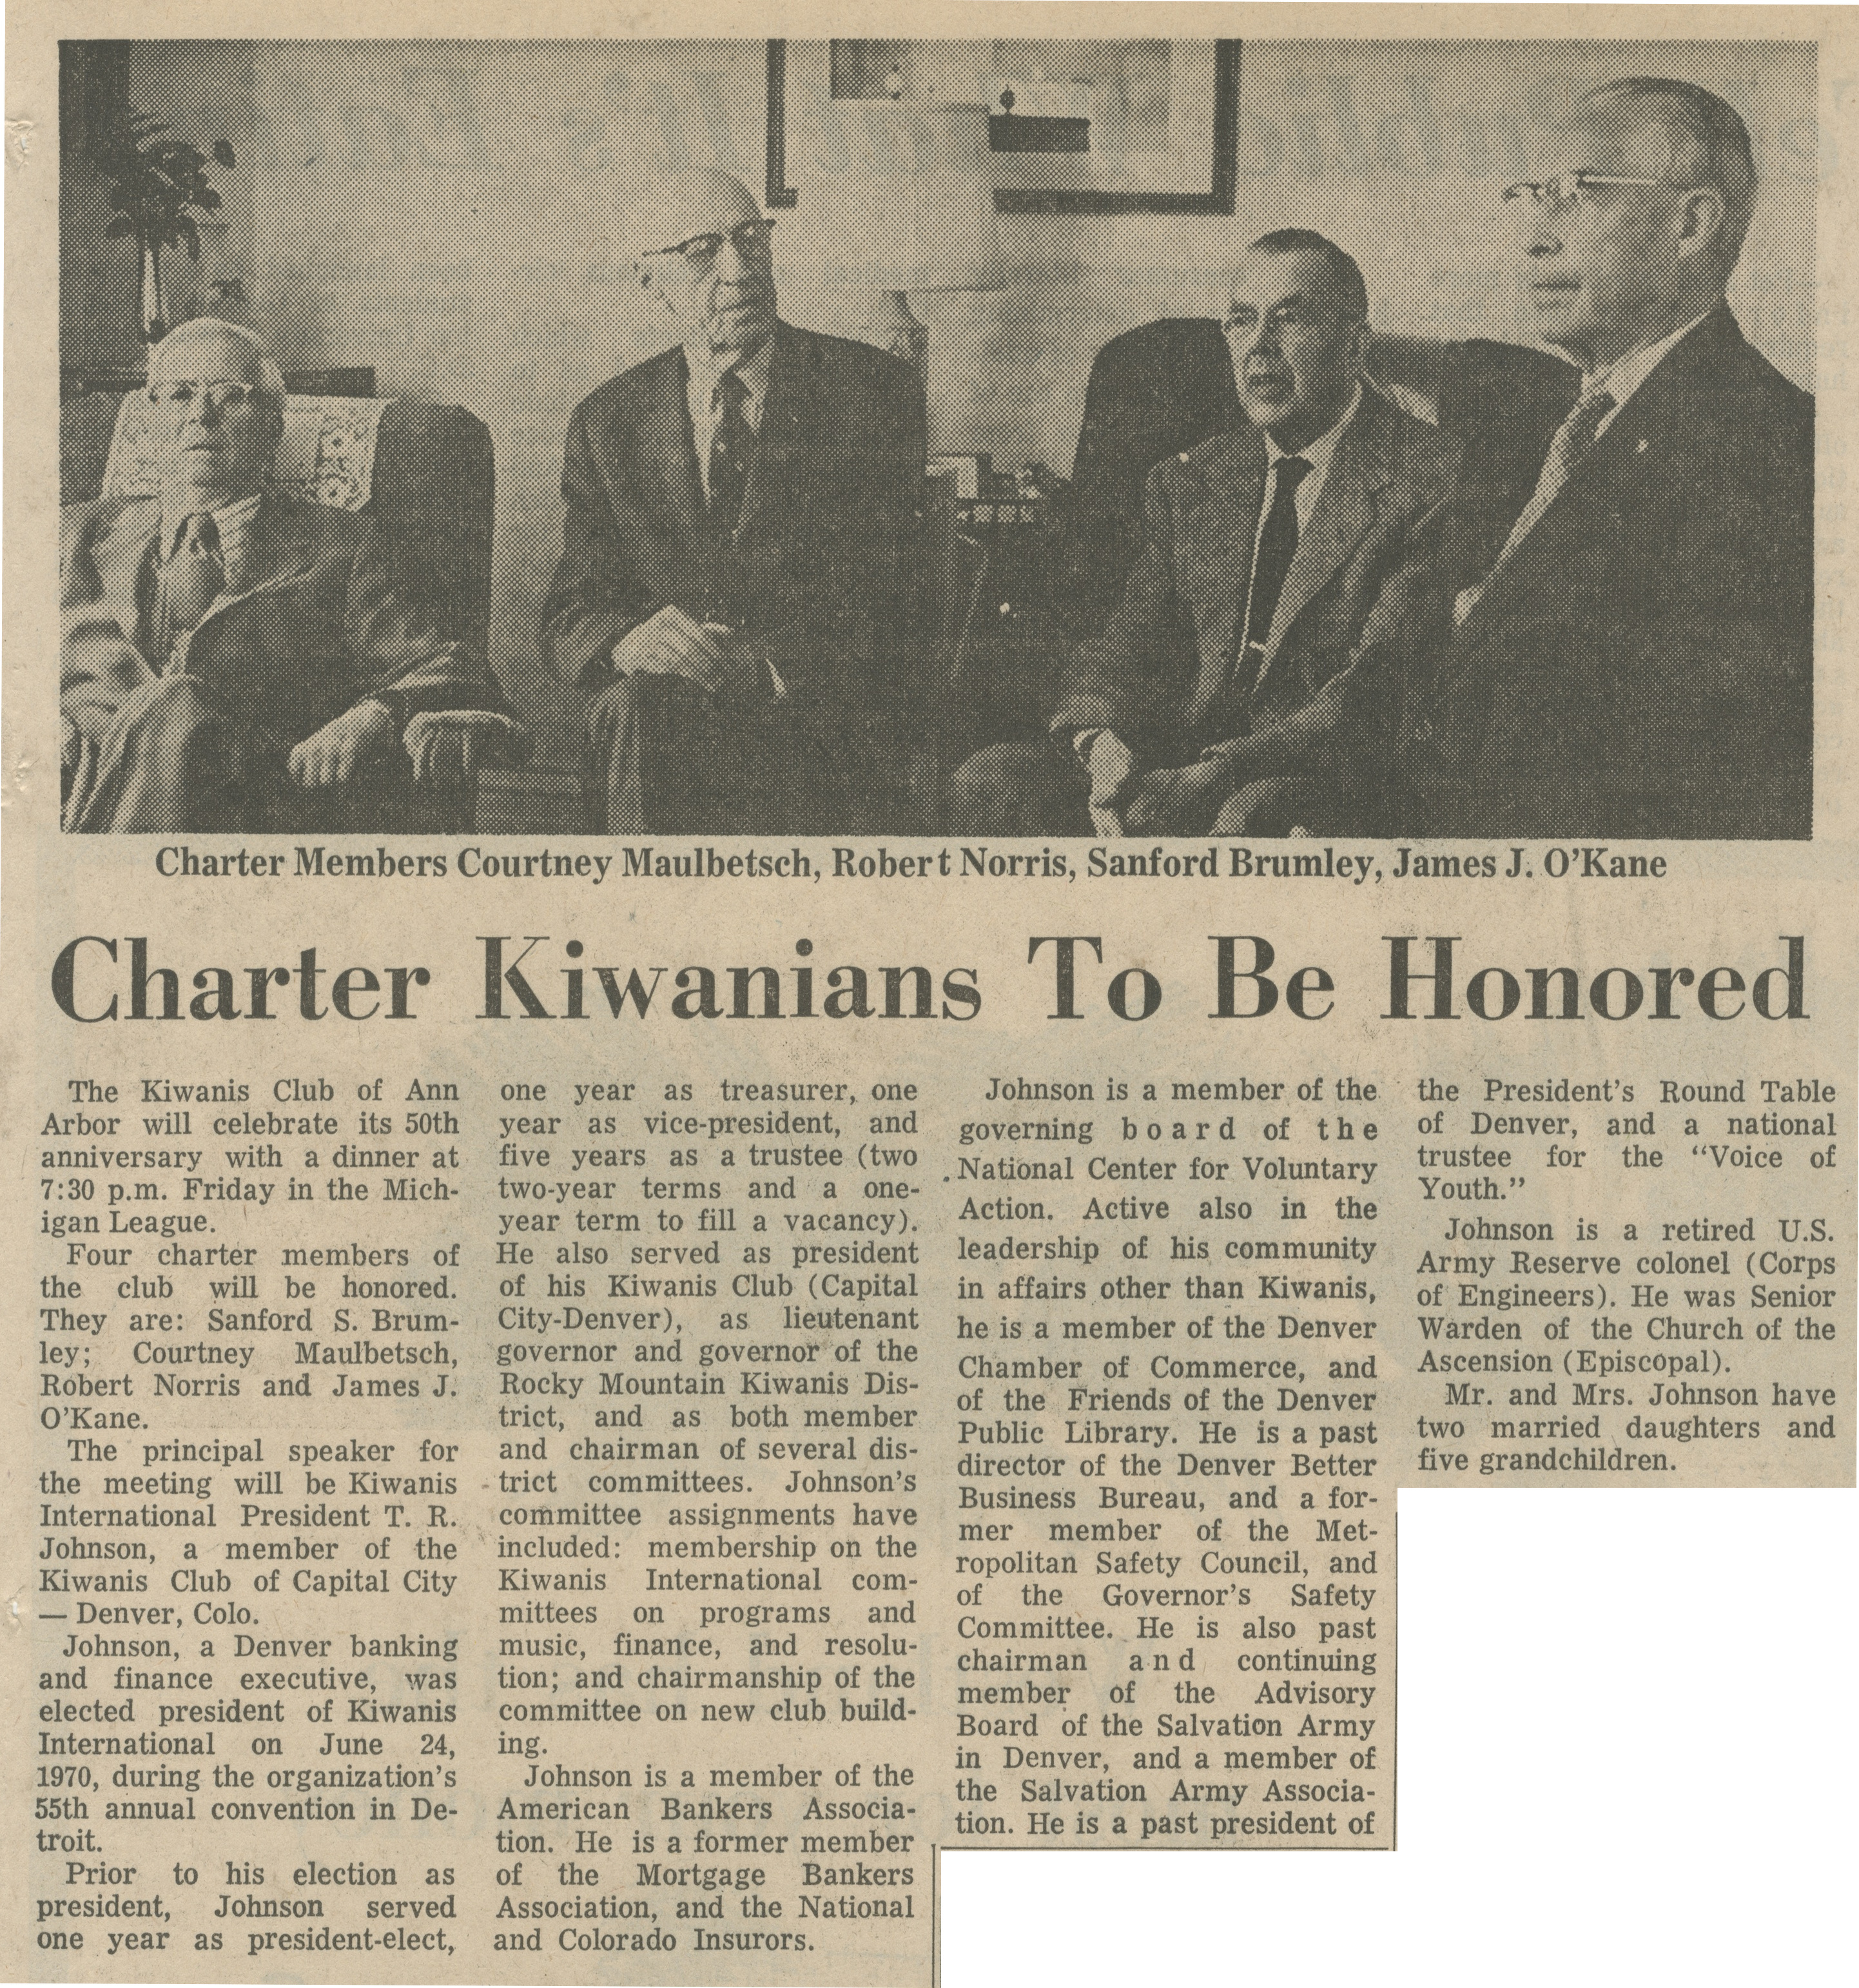 Charter Kiwanians To Be Honored image